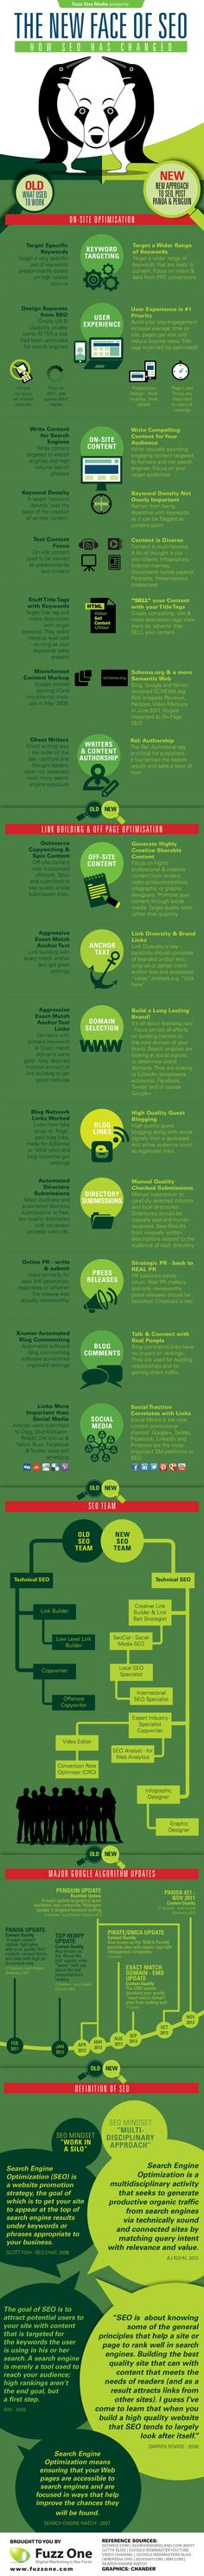 The New Face of SEO[INFOGRAPHIC] #SEO